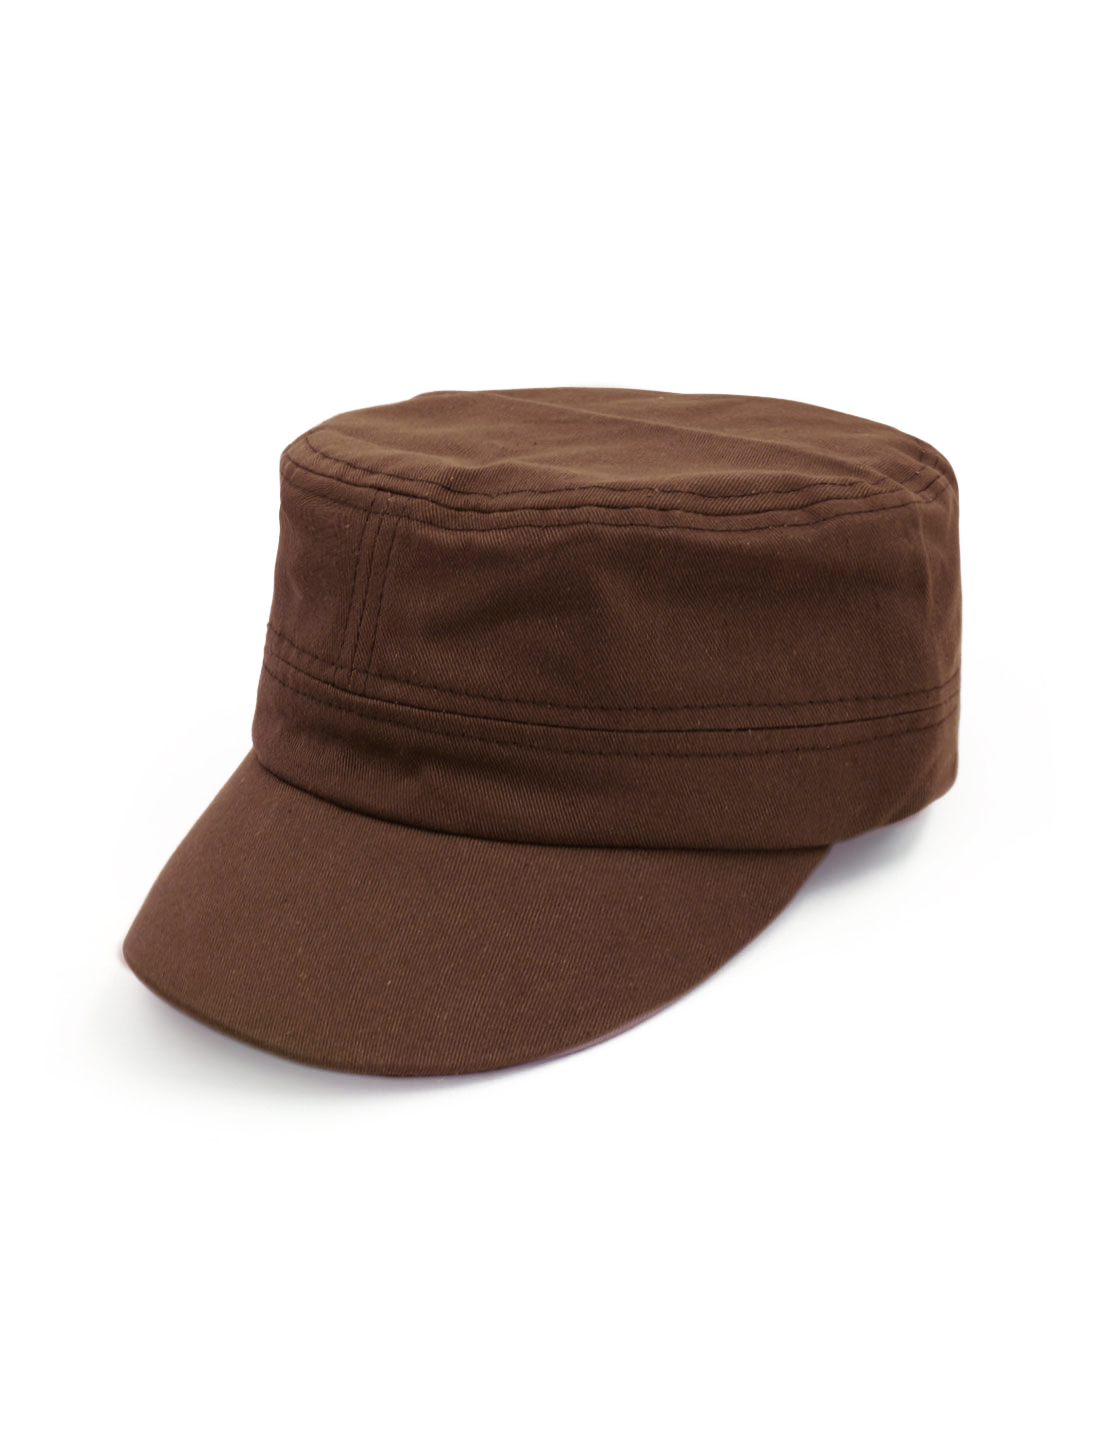 Unisex Adjustable Metal Buckle Flap Top Peaked Cap Brown